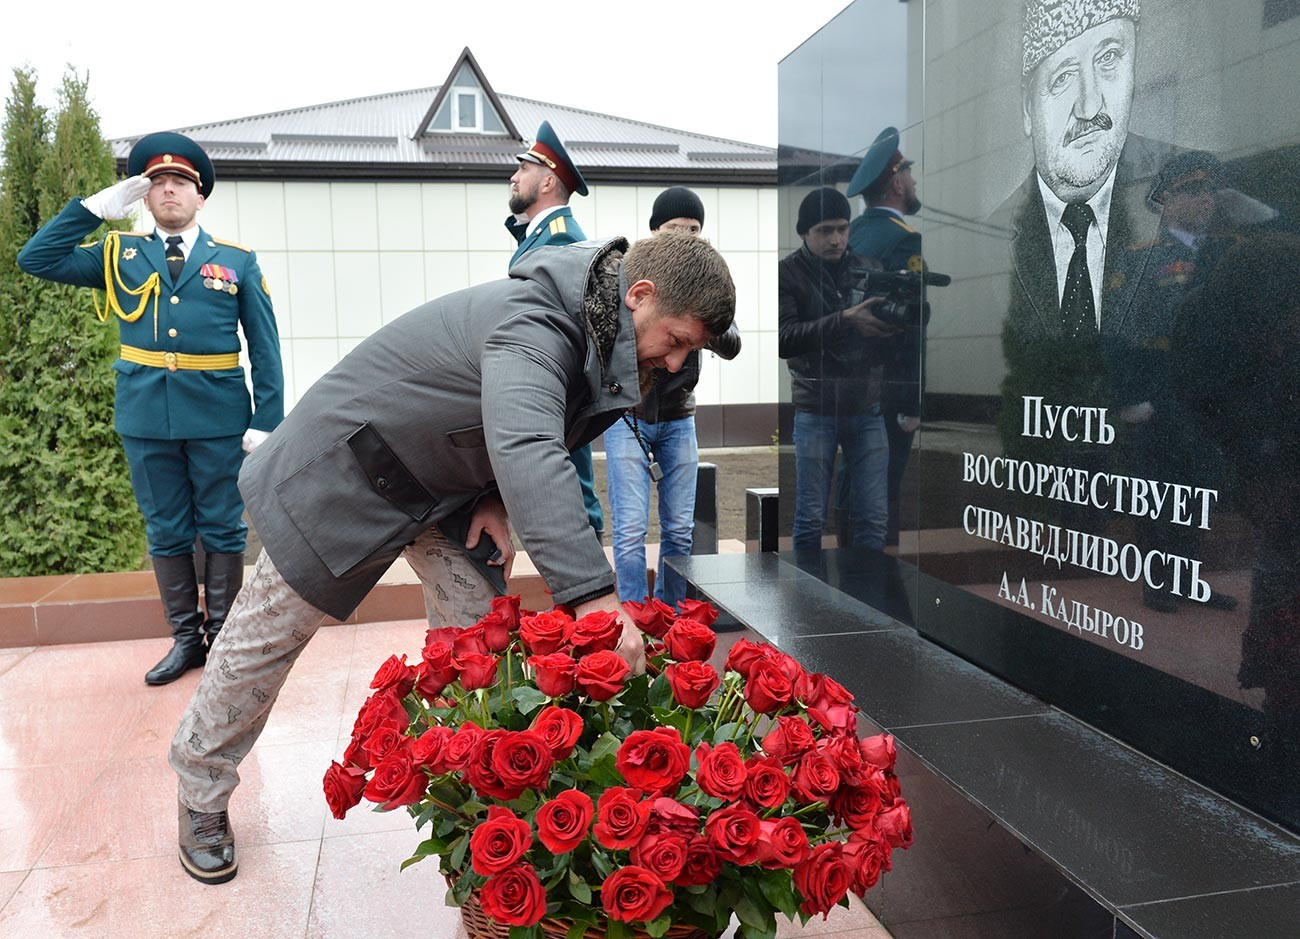 Chechen head Ramzan Kadyrov at his father's memorial.